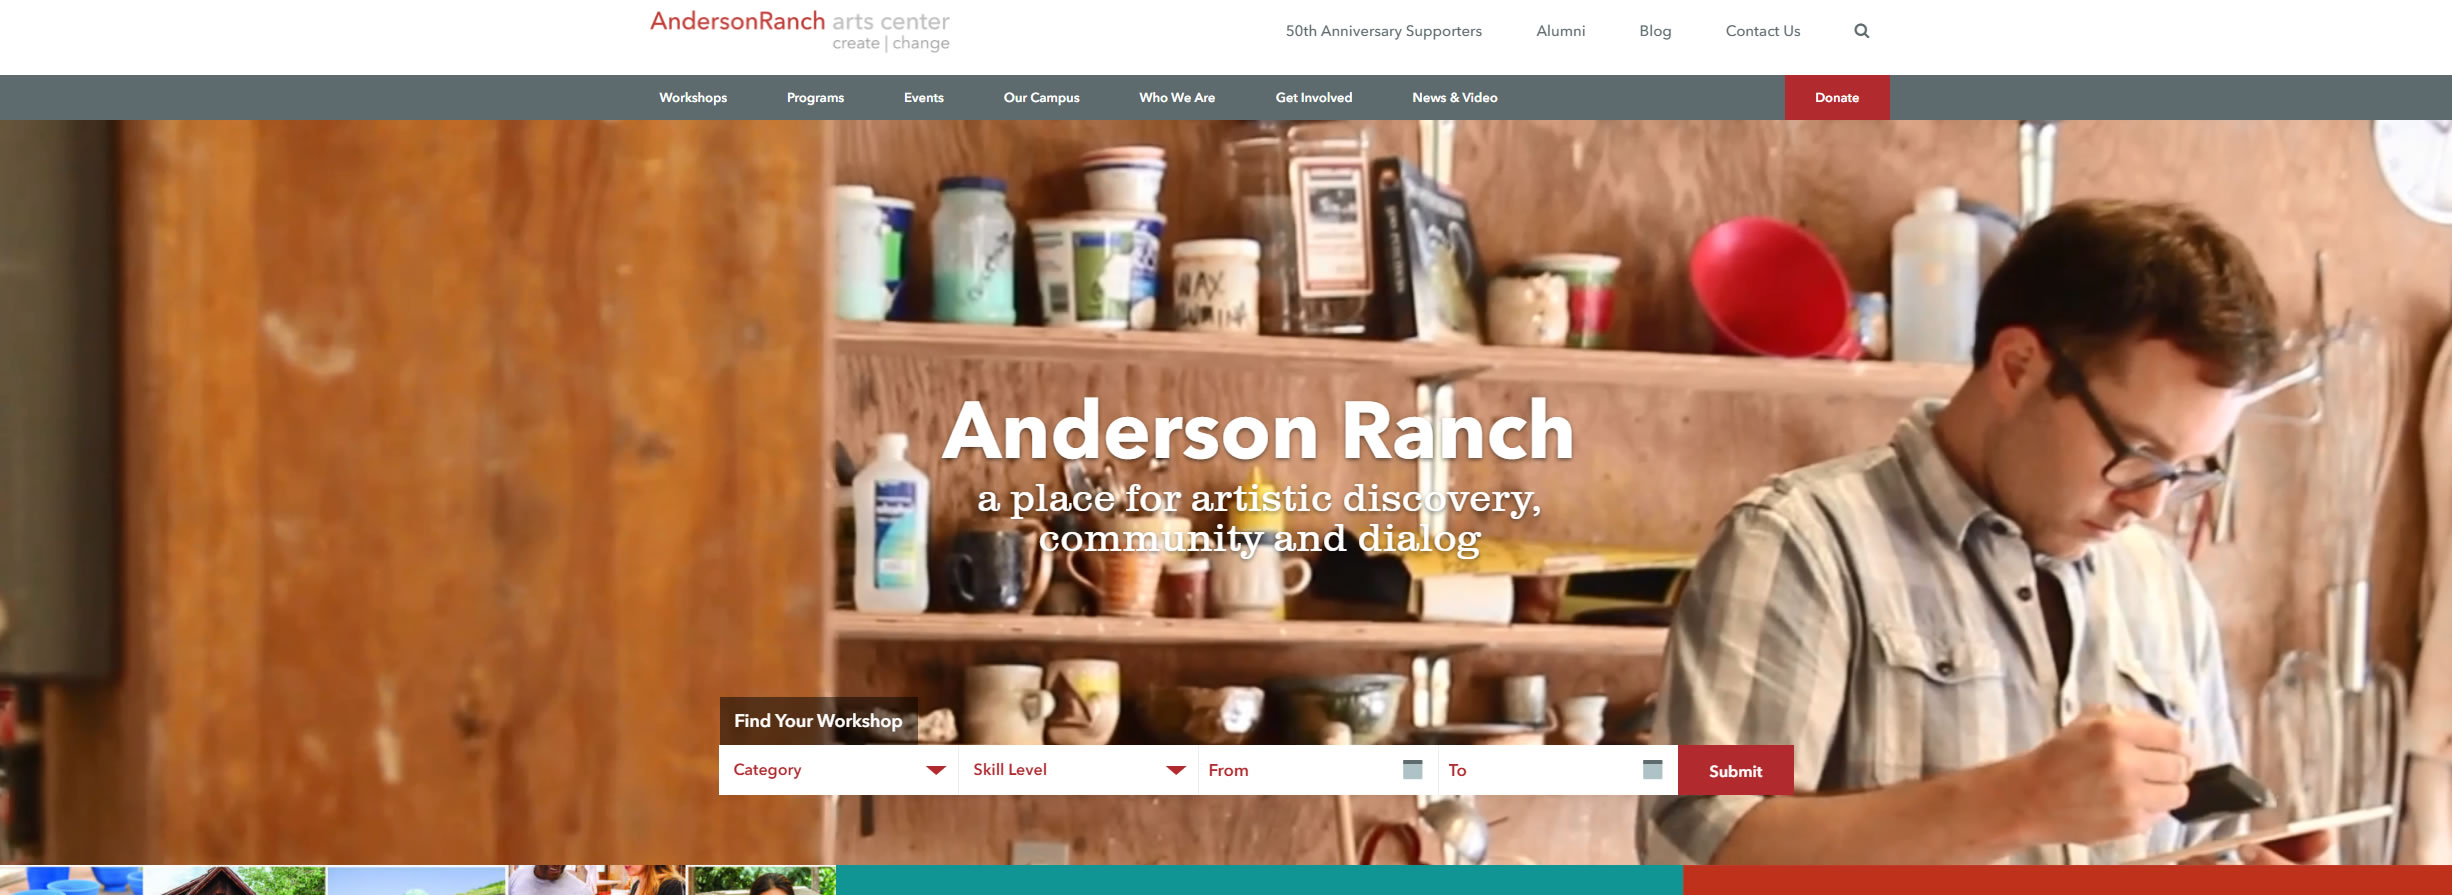 anderson_ranch-art_center_galeria_de_gravura